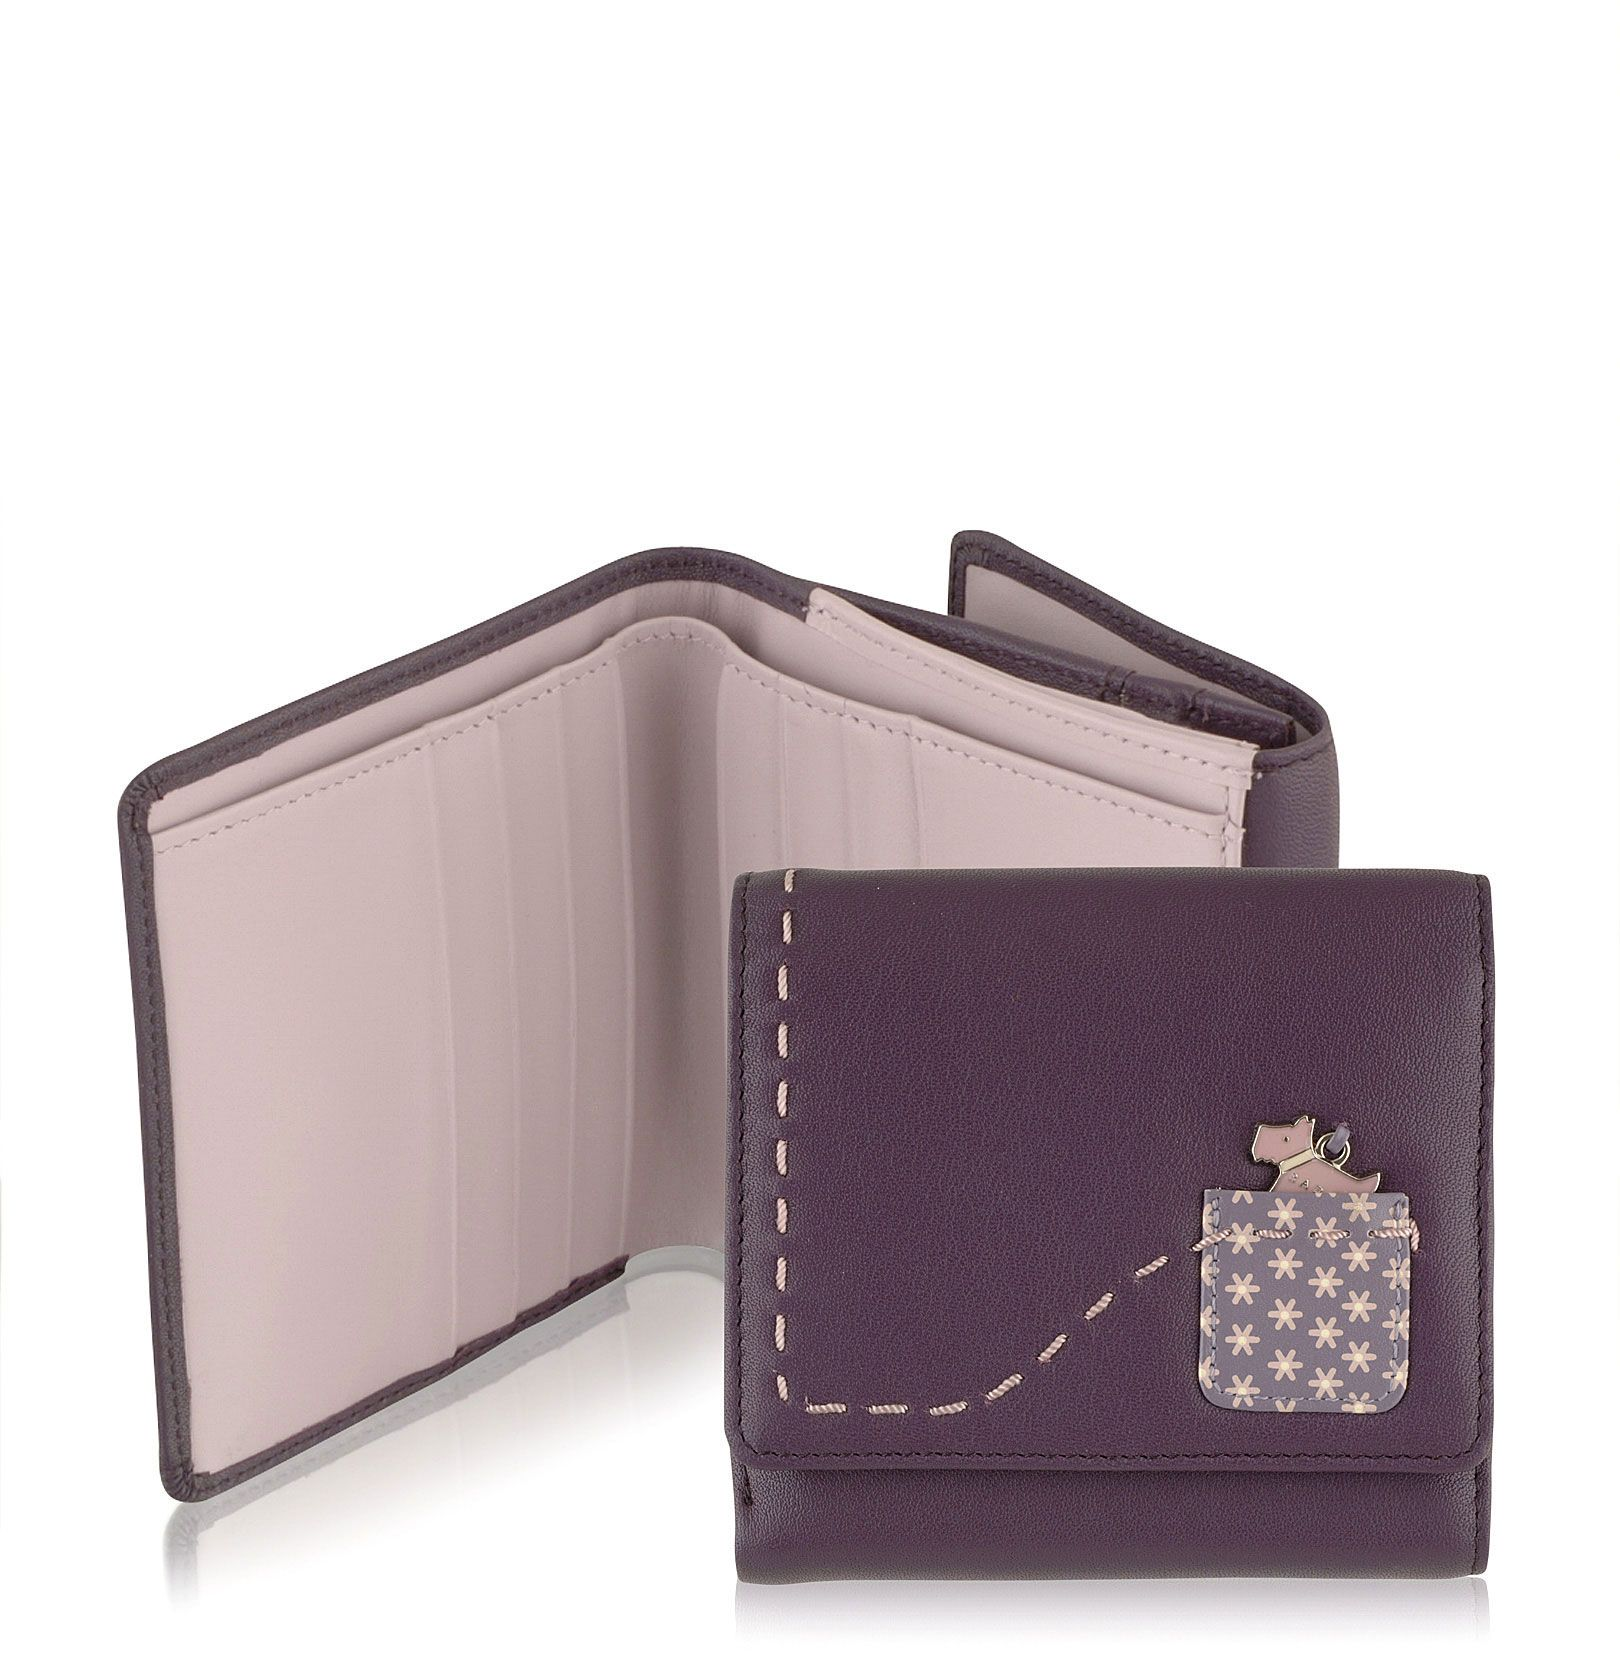 Radley Daisy small leather flapover tab wallet product image